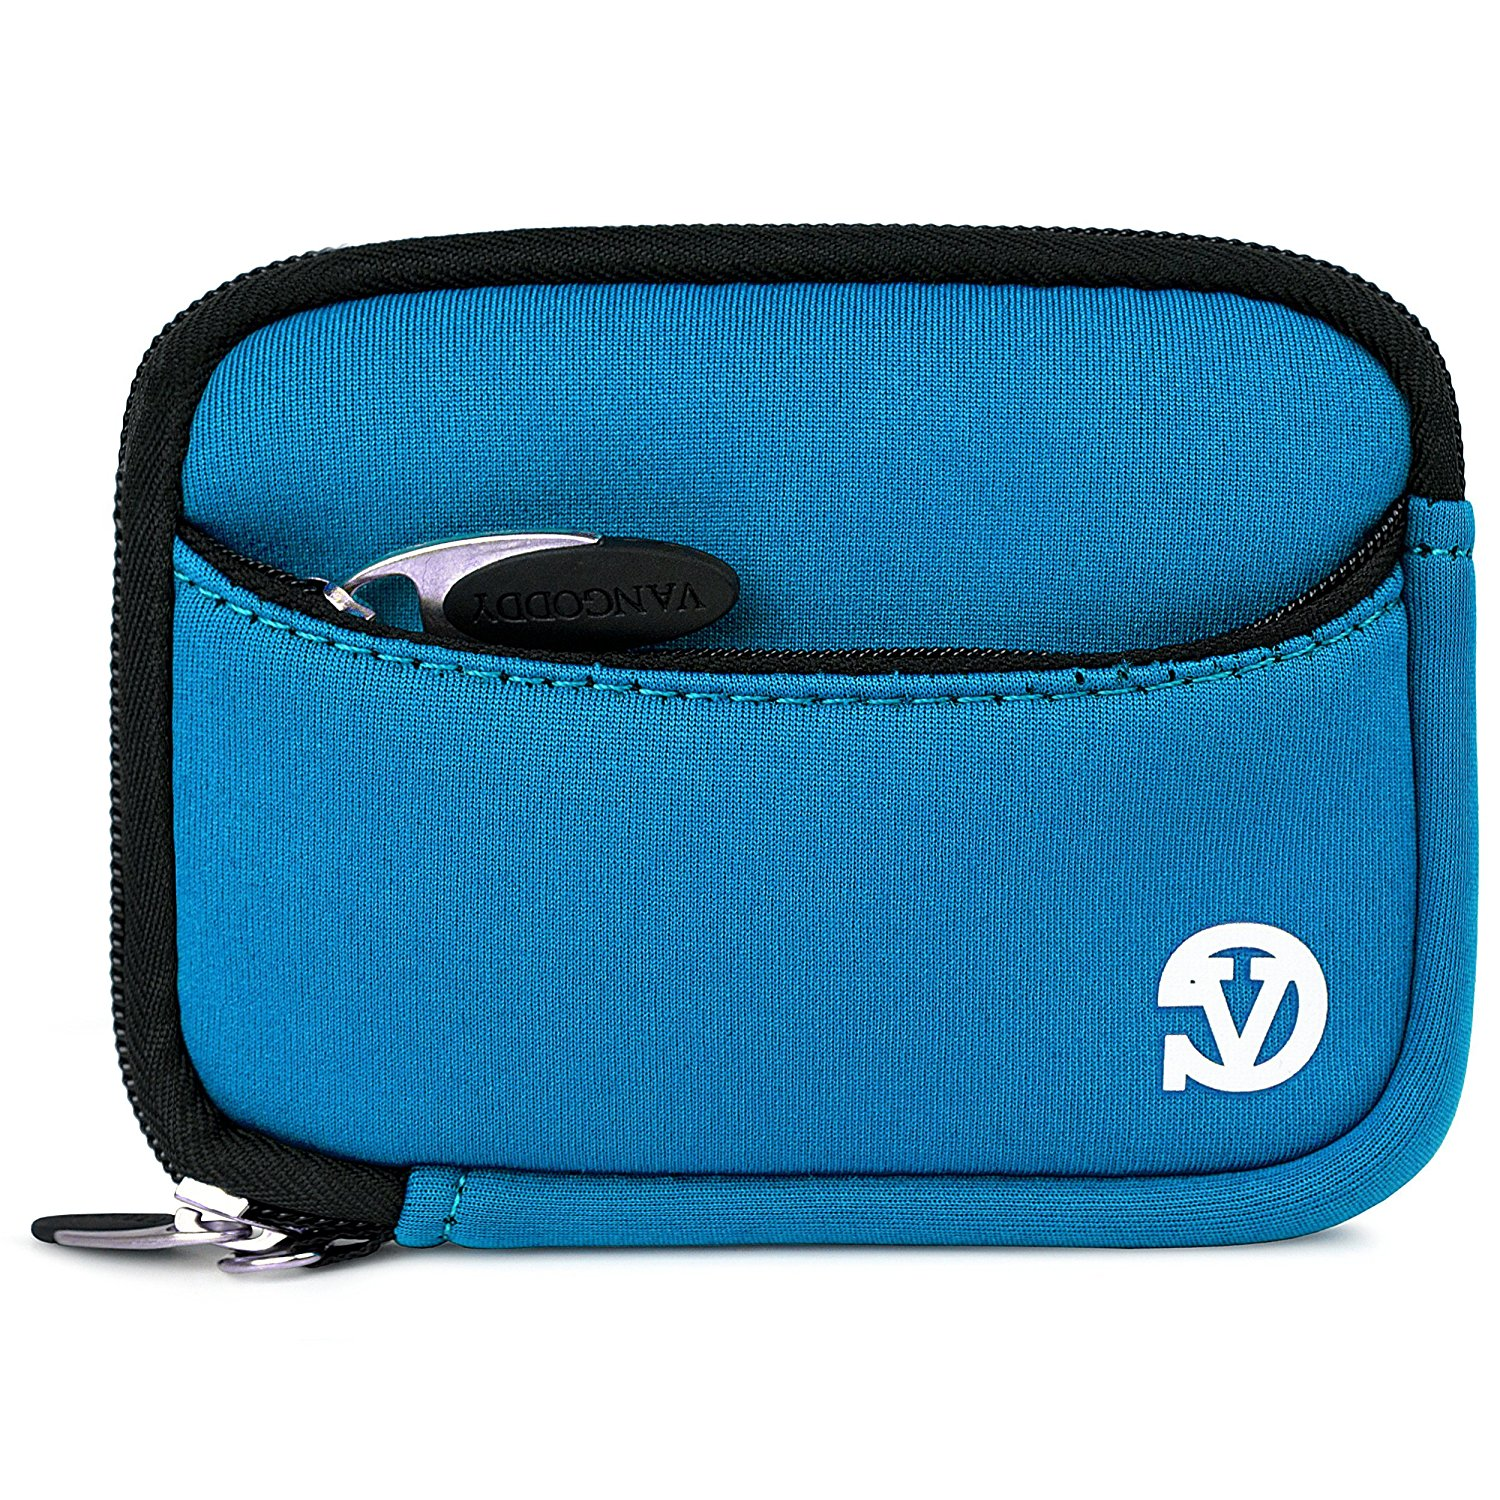 VanGoddy Mini Glove Sleeve Pouch Case for Panasonic Lumix DMC Series Point & Shoot Digital Cameras (Sky Blue)